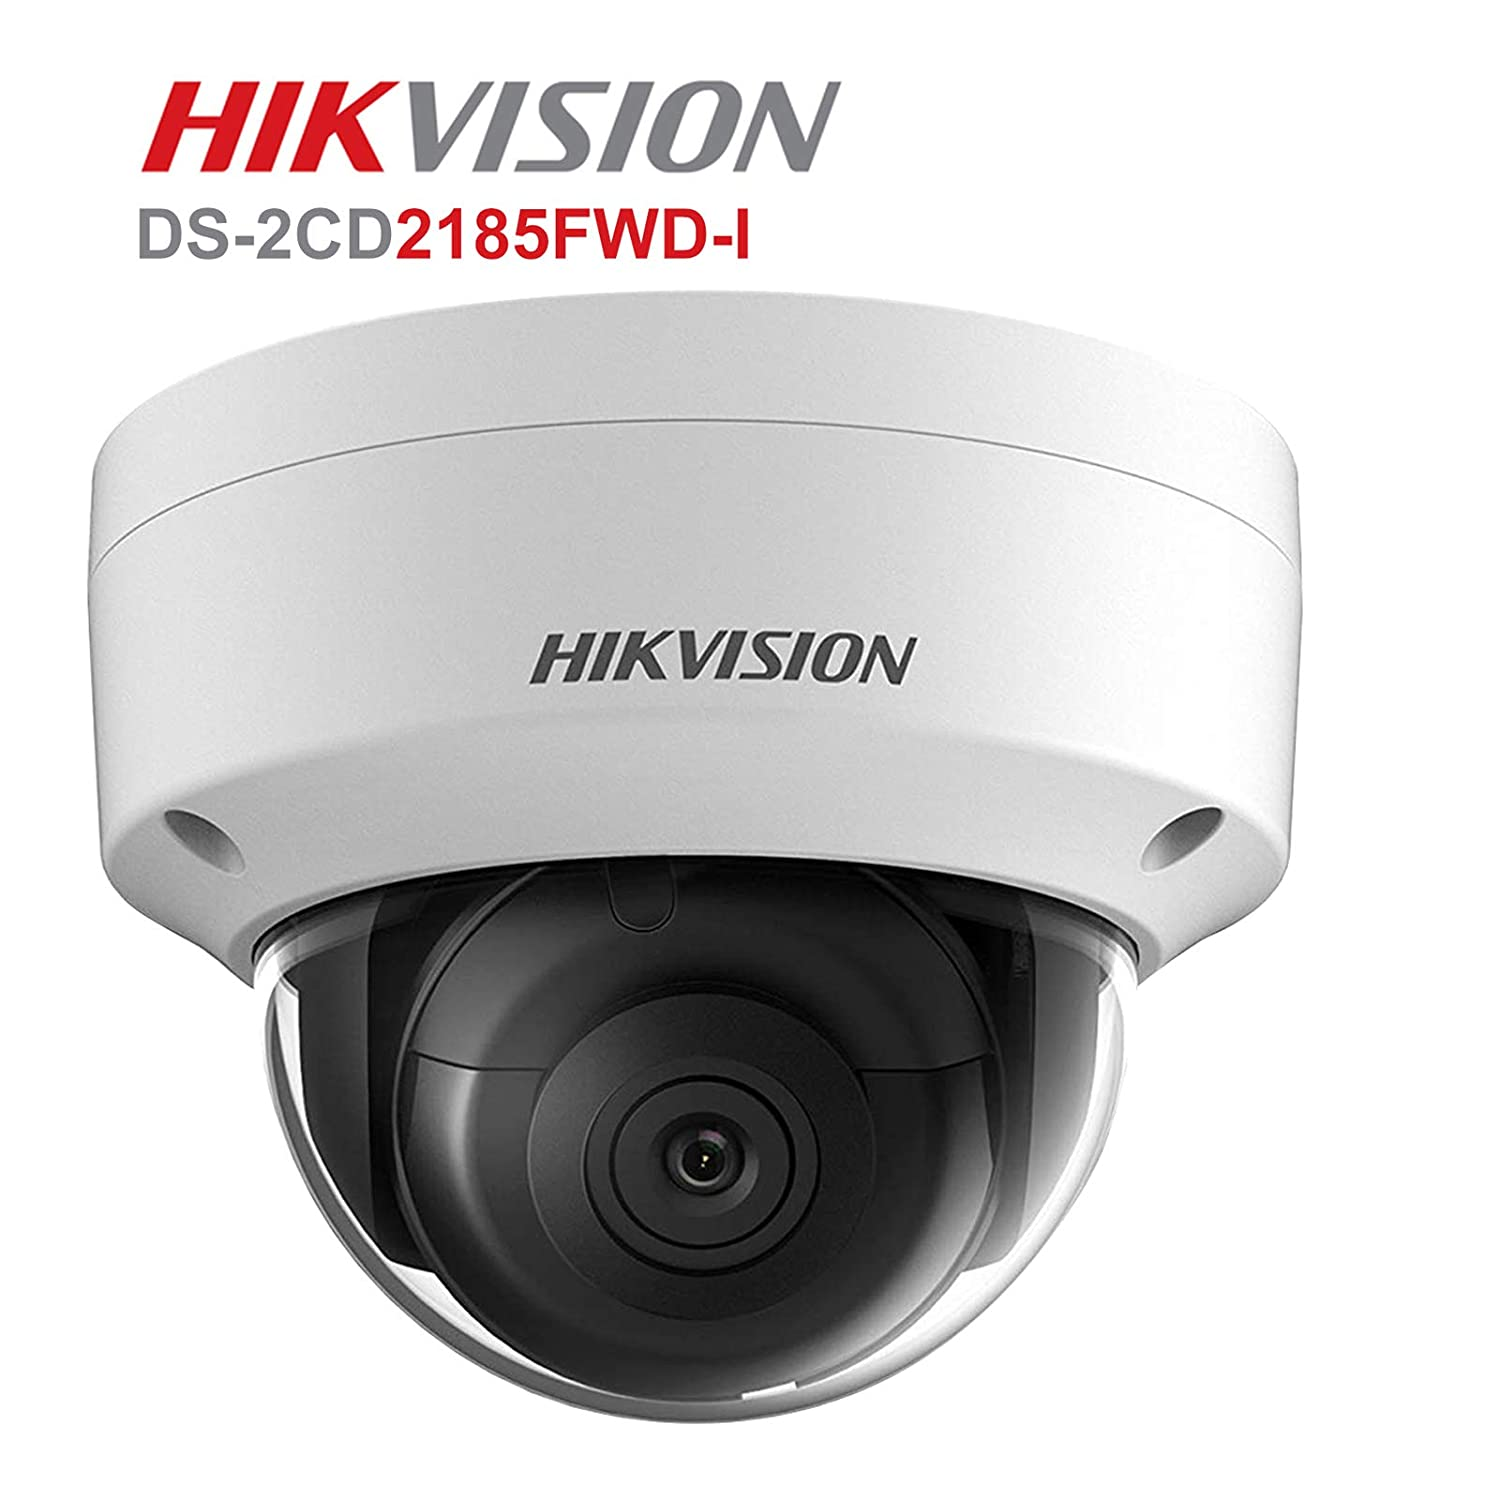 Hikvision Dome IP Camera 8MP Outdoor DS-2CD2185FWD-IS Audio USA Firmware 2.8mm